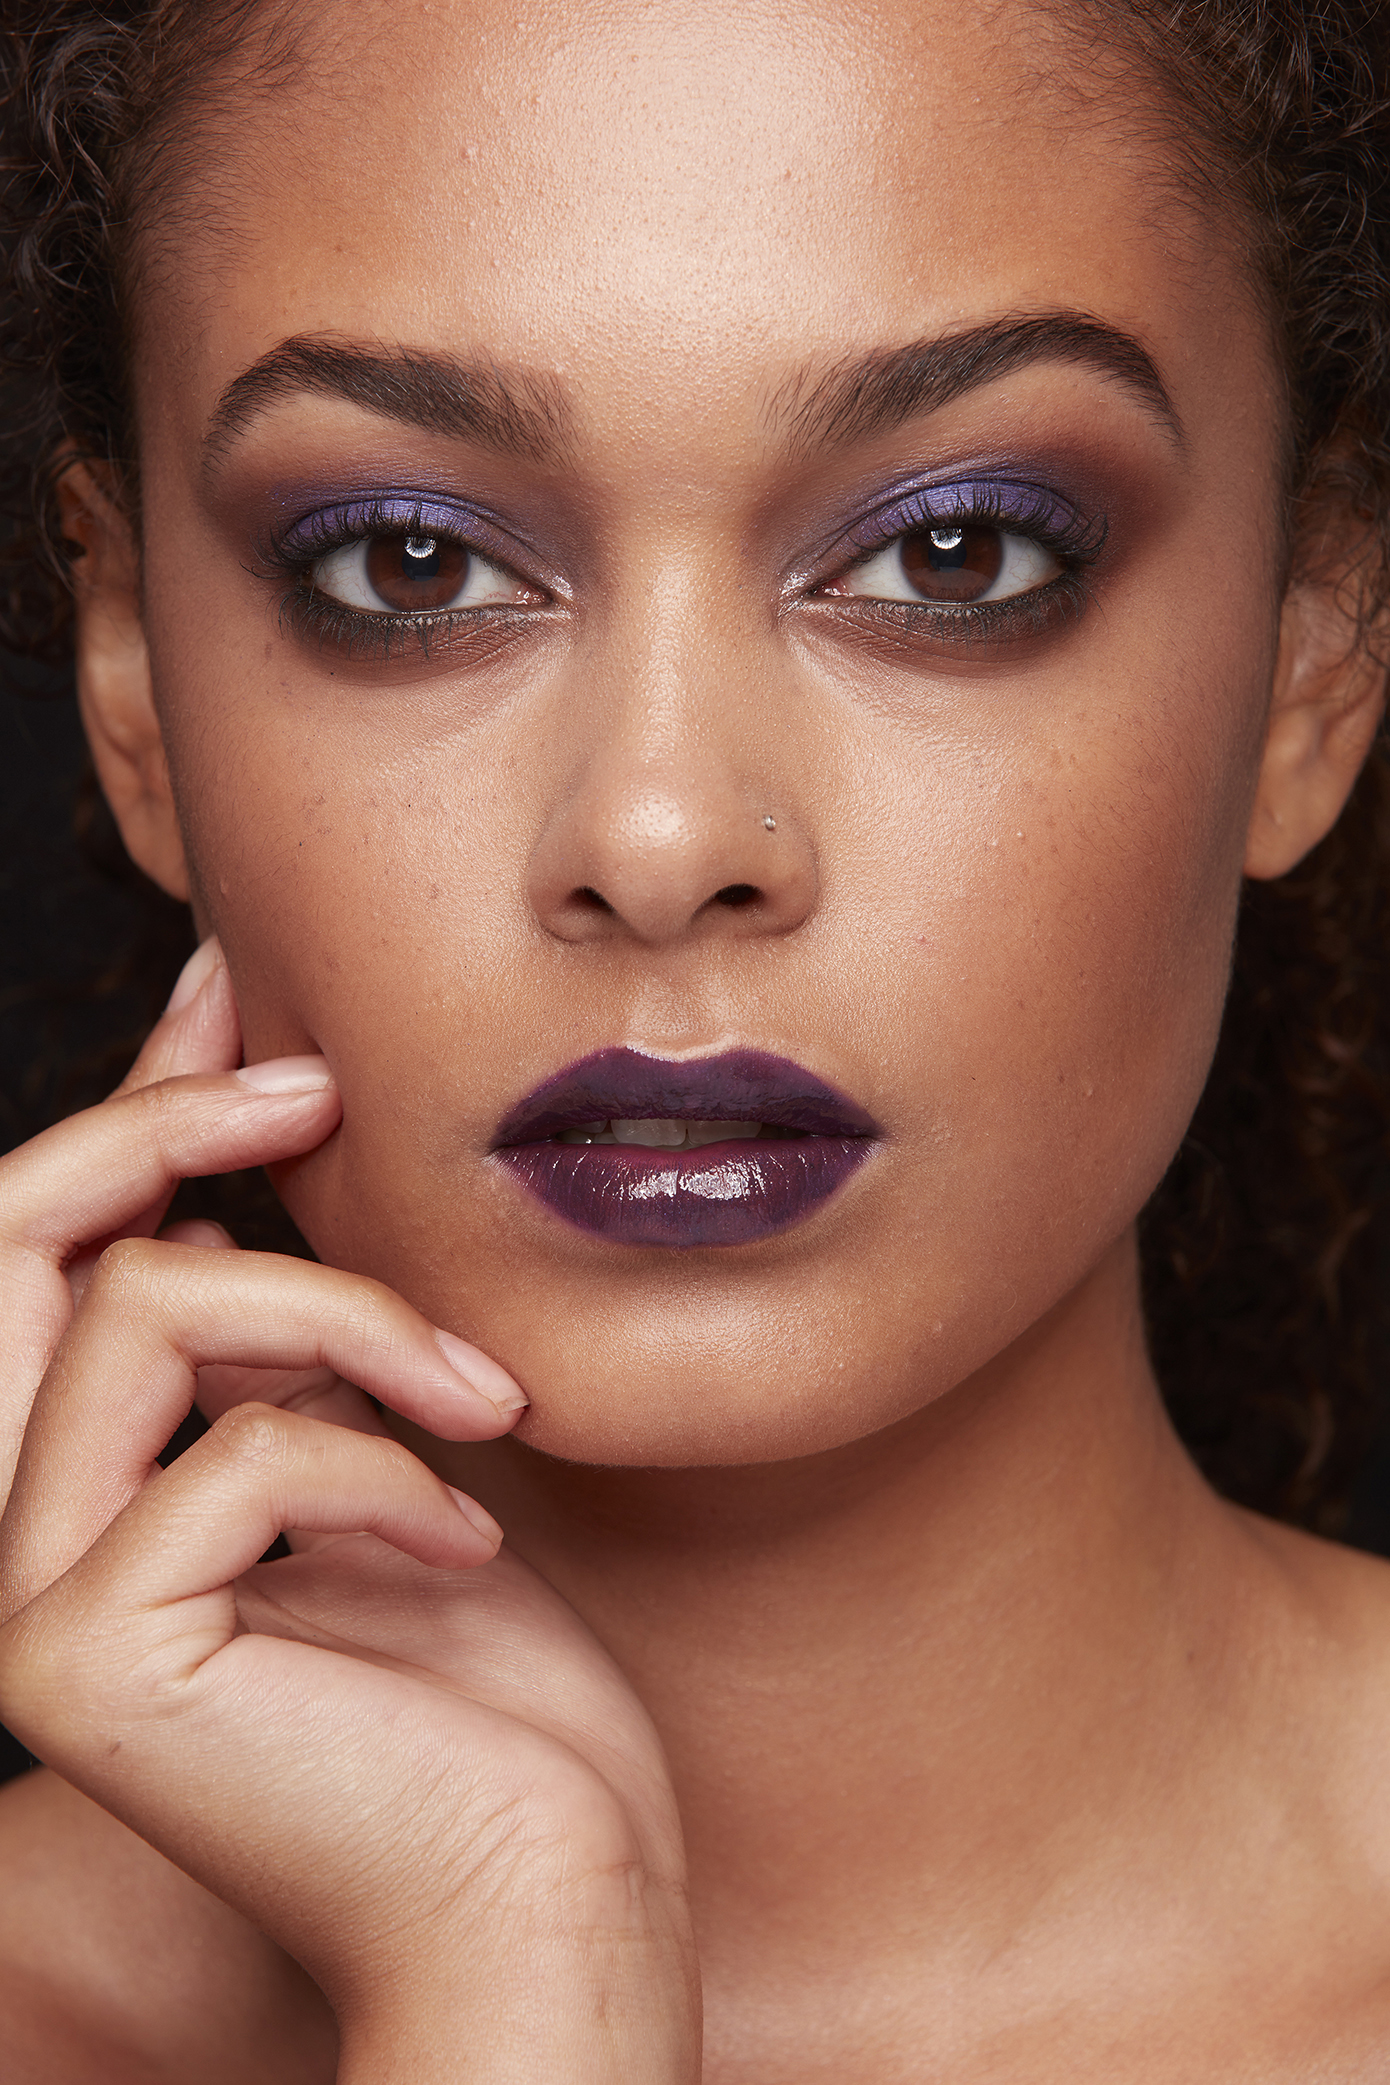 closeup of woman with purple amethyst eye shadow and purple lipstick, hand on face